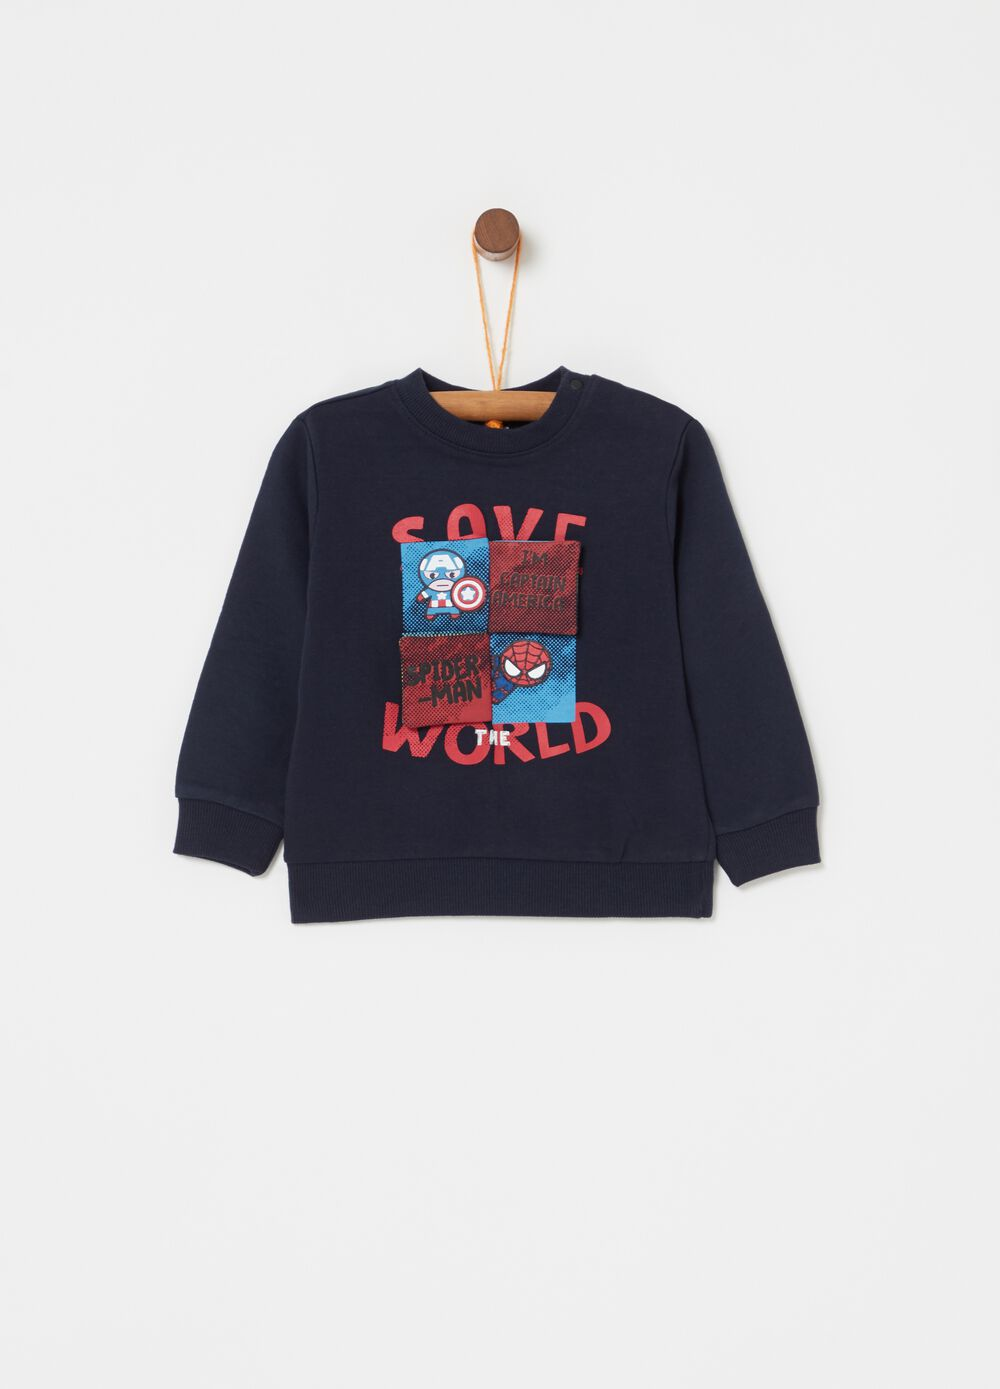 100% cotton sweatshirt with print and lettering